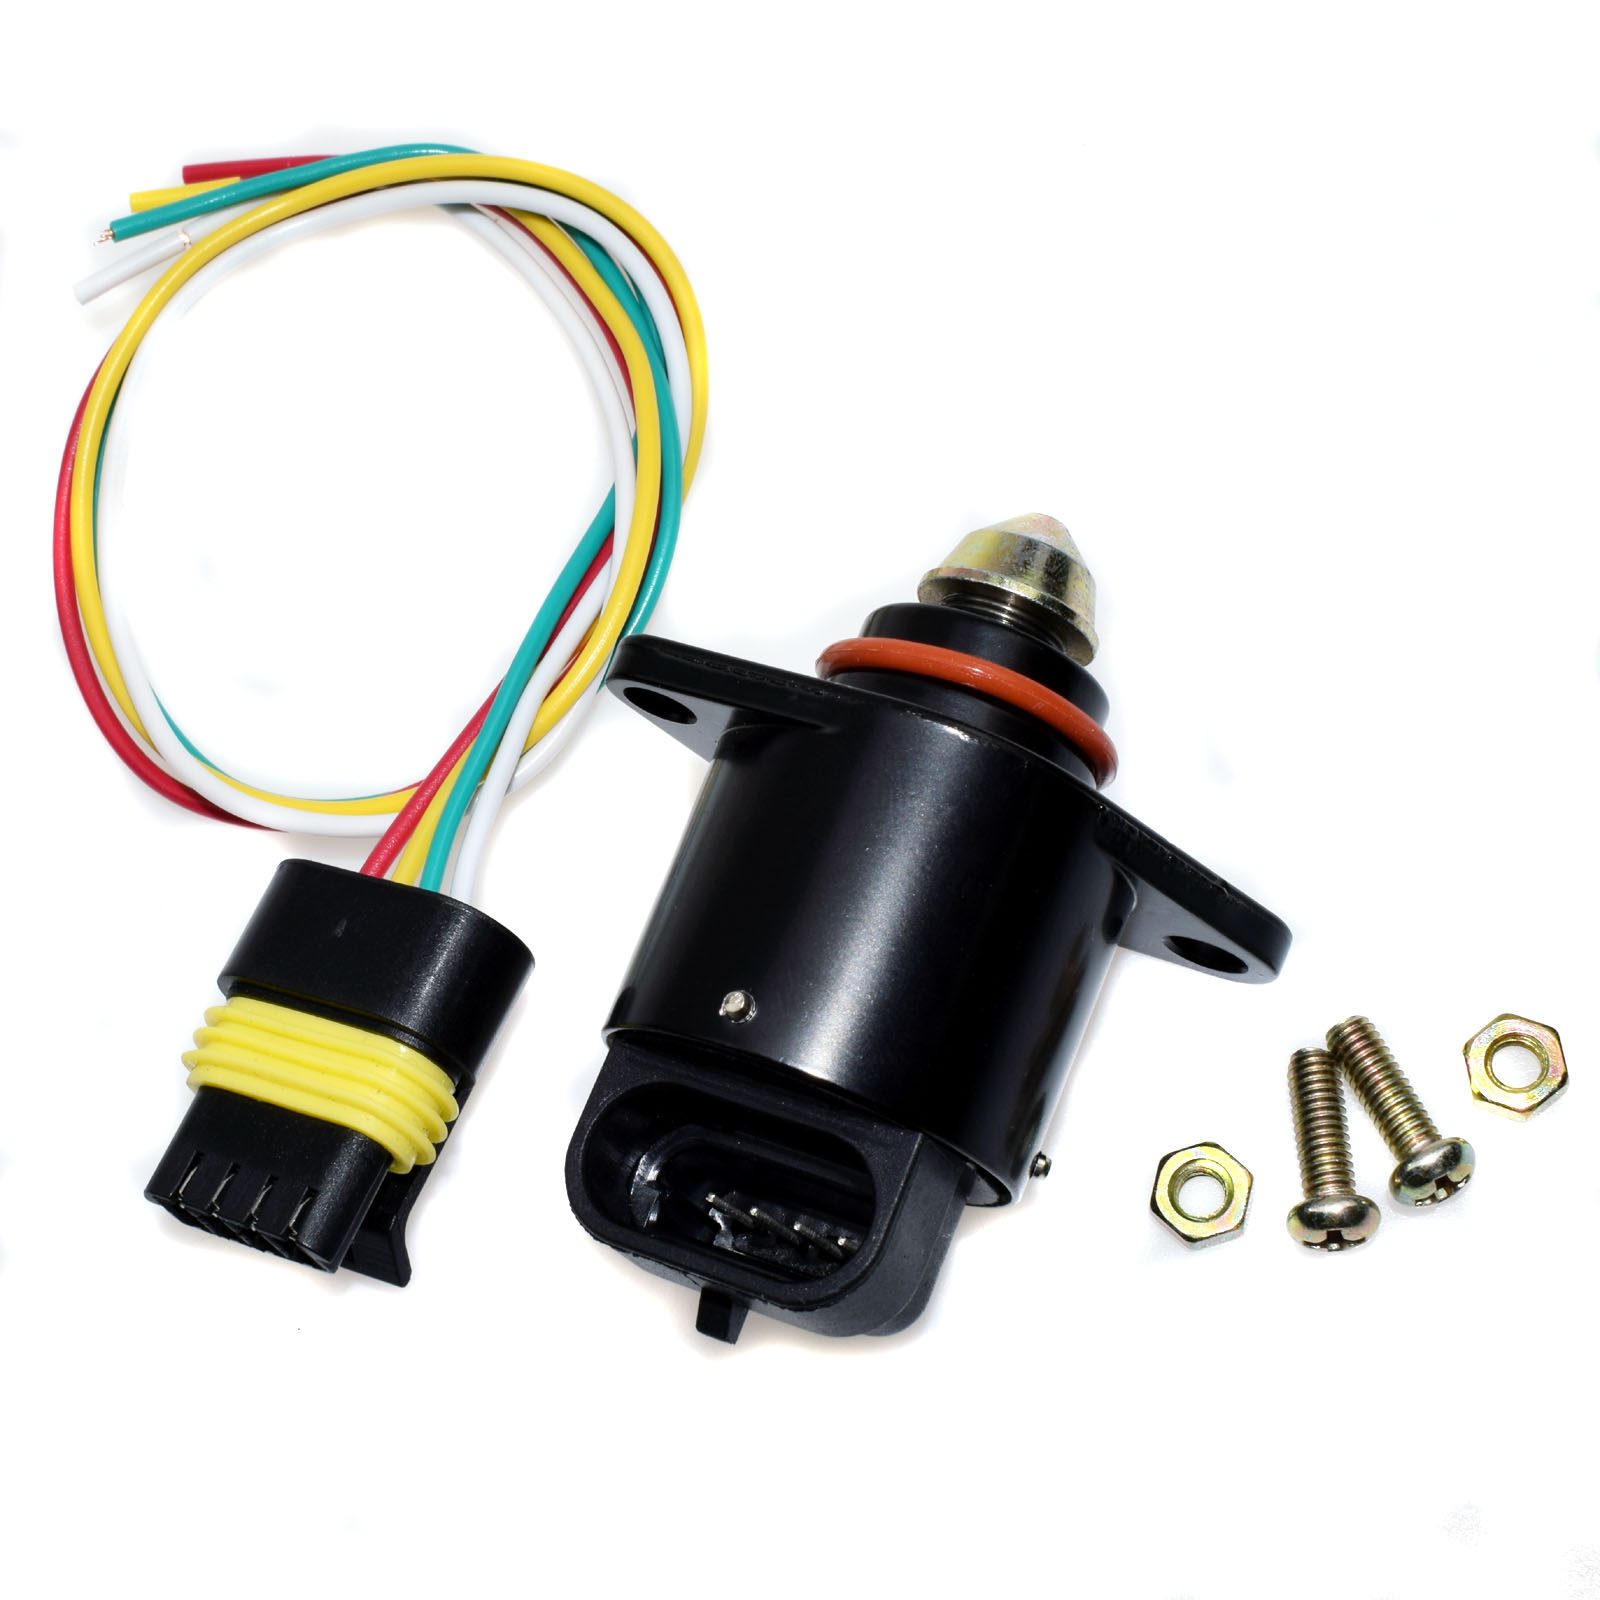 WOLFIGO New Control Idle Air Valve W/ Or W/O Pigtail Wires For BUICK G-MC Chevrolet Oldsmobile 17112479,17112649,17113099